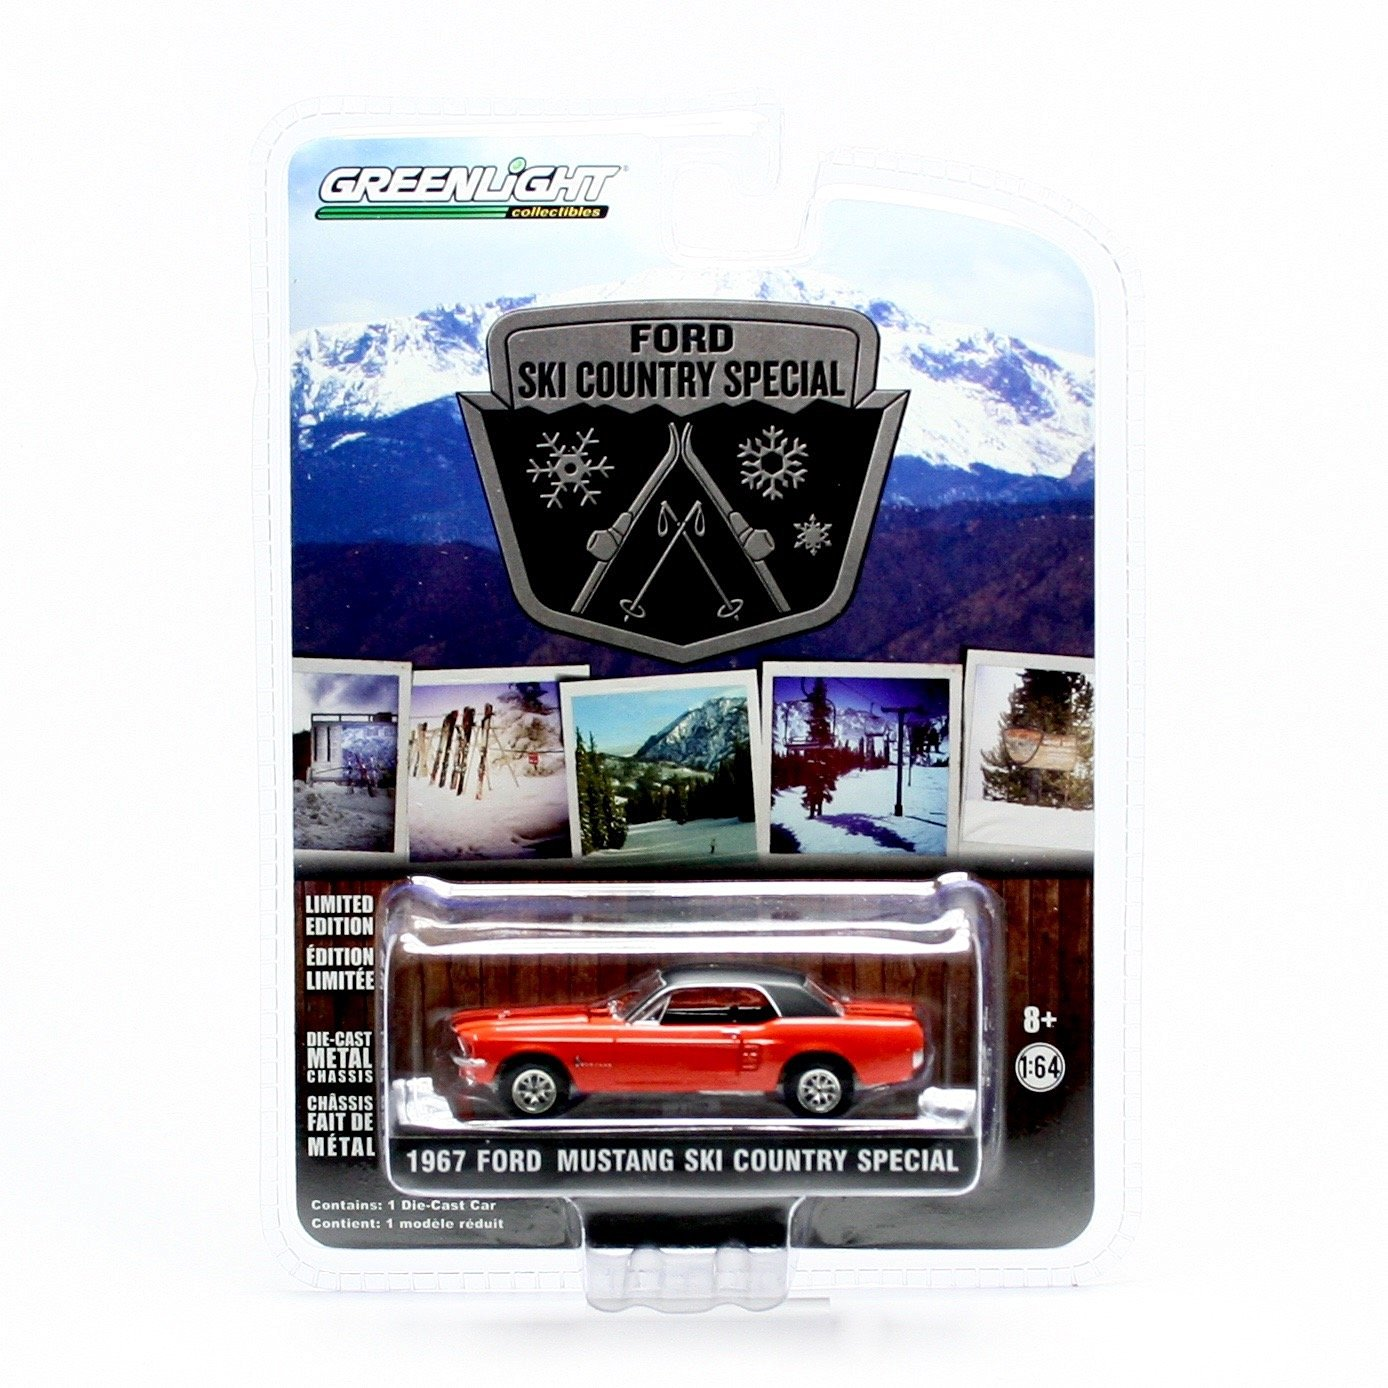 1967 FORD MUSTANG SKI COUNTRY SPECIAL (Aspen Red & Black Stripes) Hobby Exclusive 2014 Greenlight Collectibles 1:64 Scale Limited Edition Die-Cast Vehicle